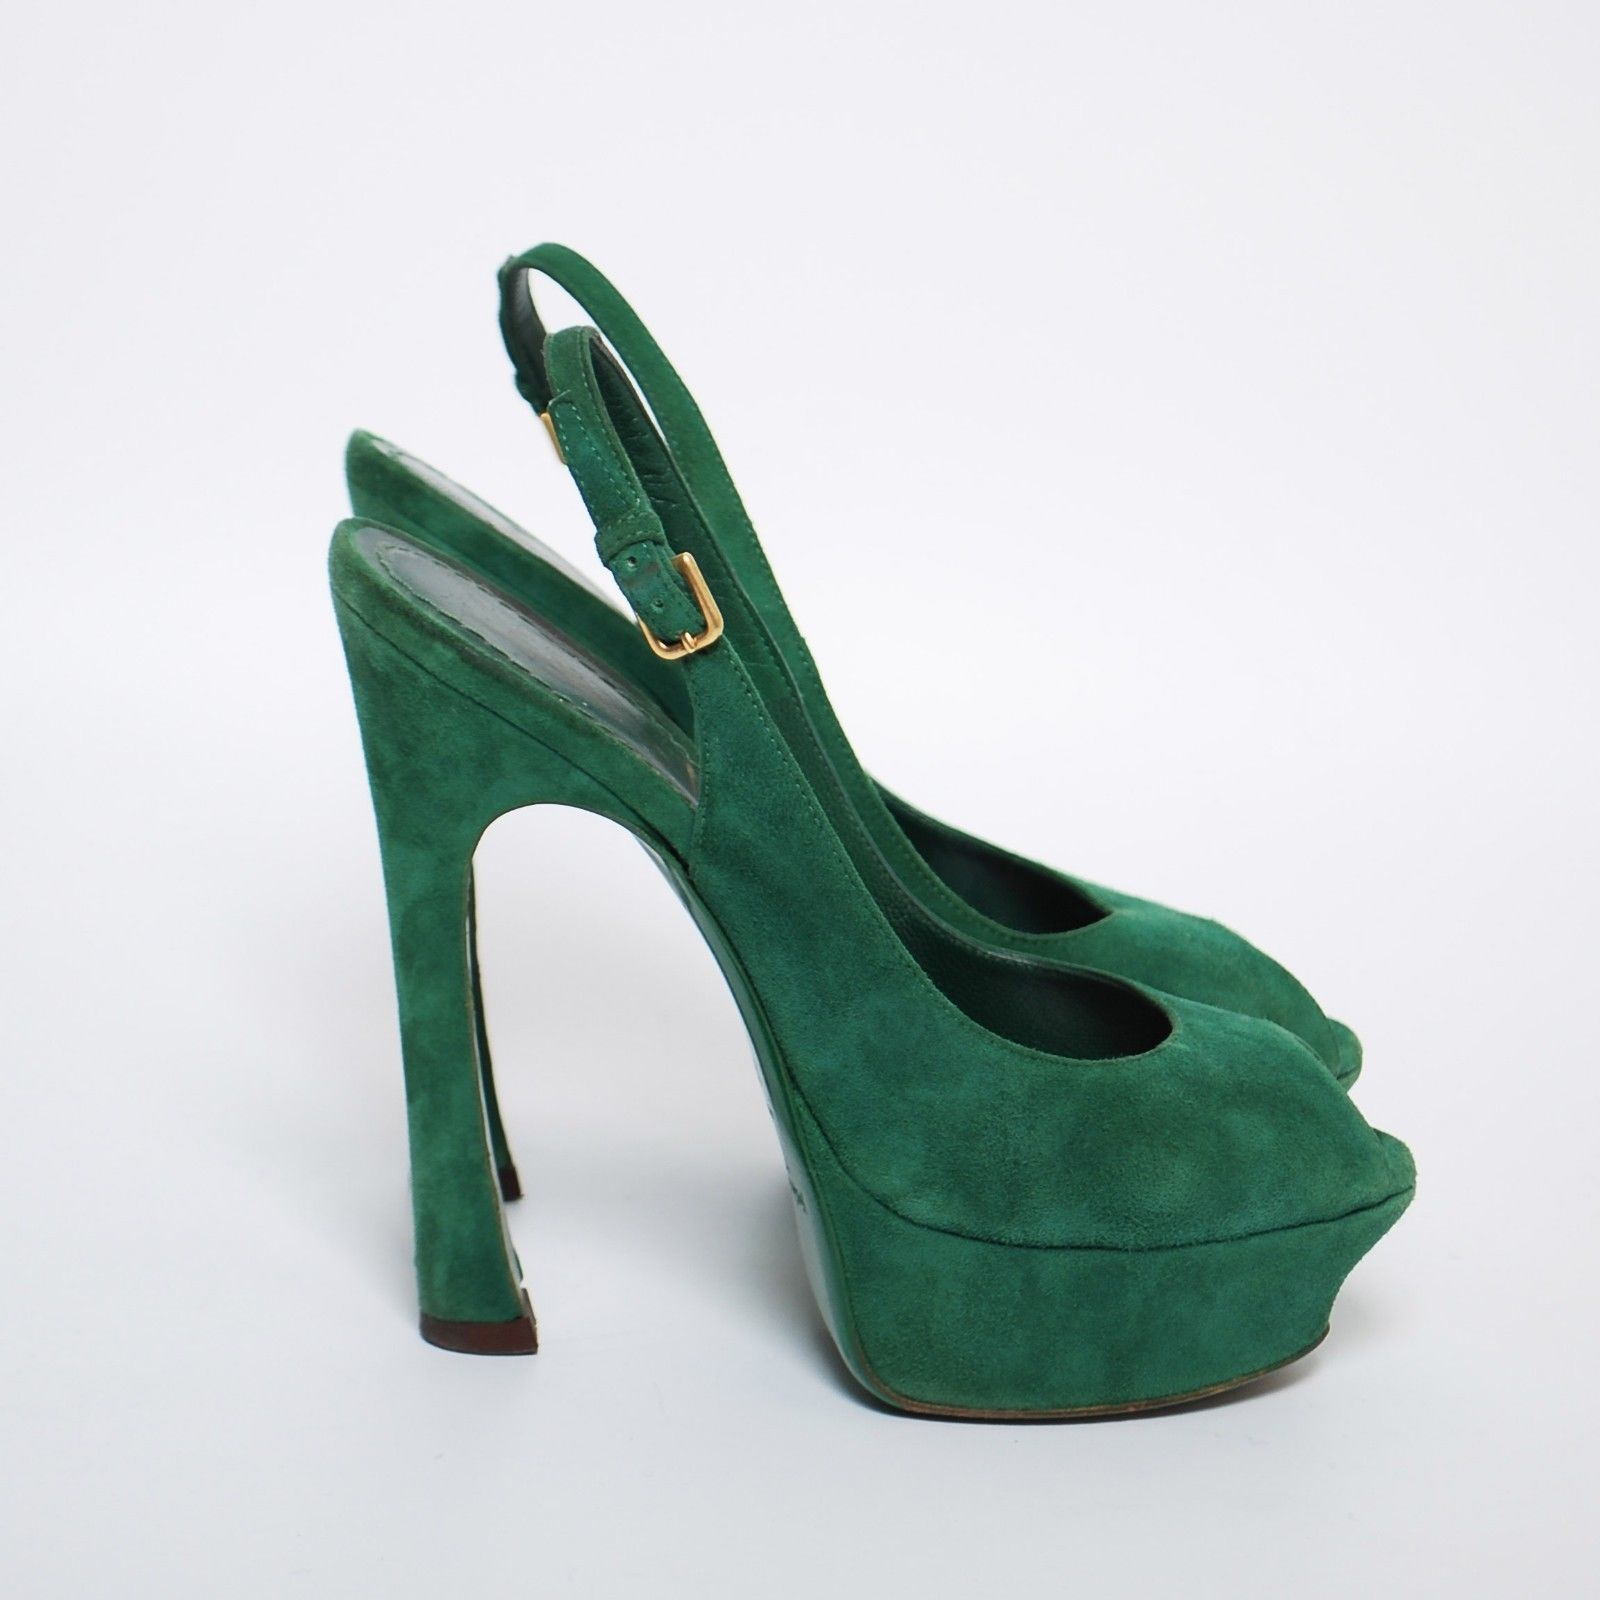 695f31cdb85 Yves Saint Laurent Green Suede High Heels and similar items. 57